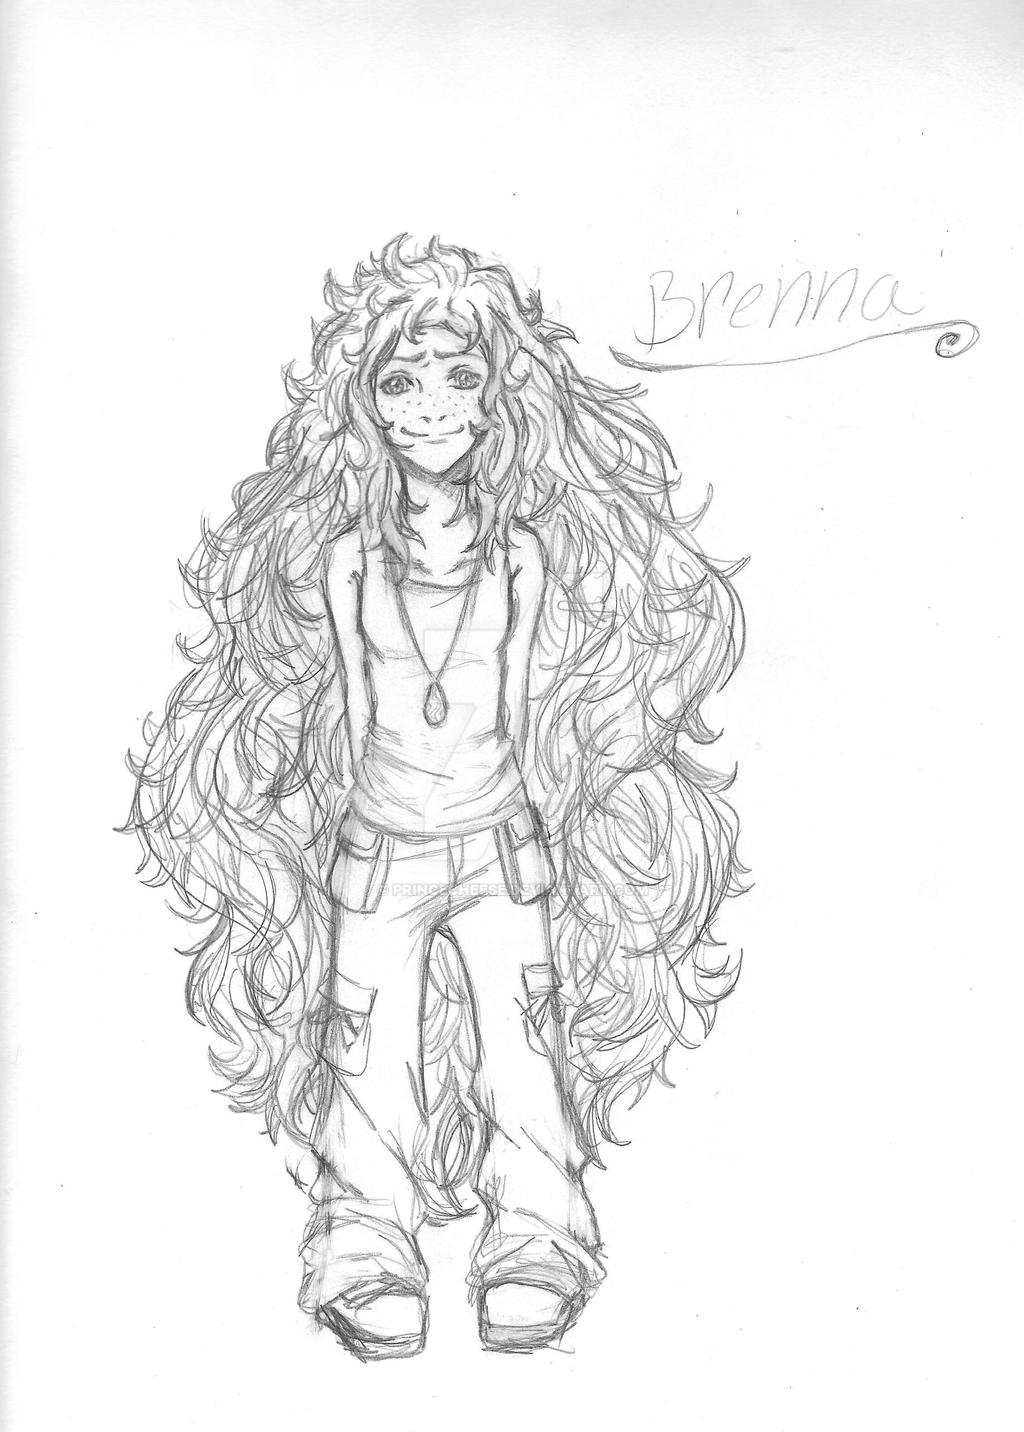 Brenna-chan and her hair! by empressofcheese